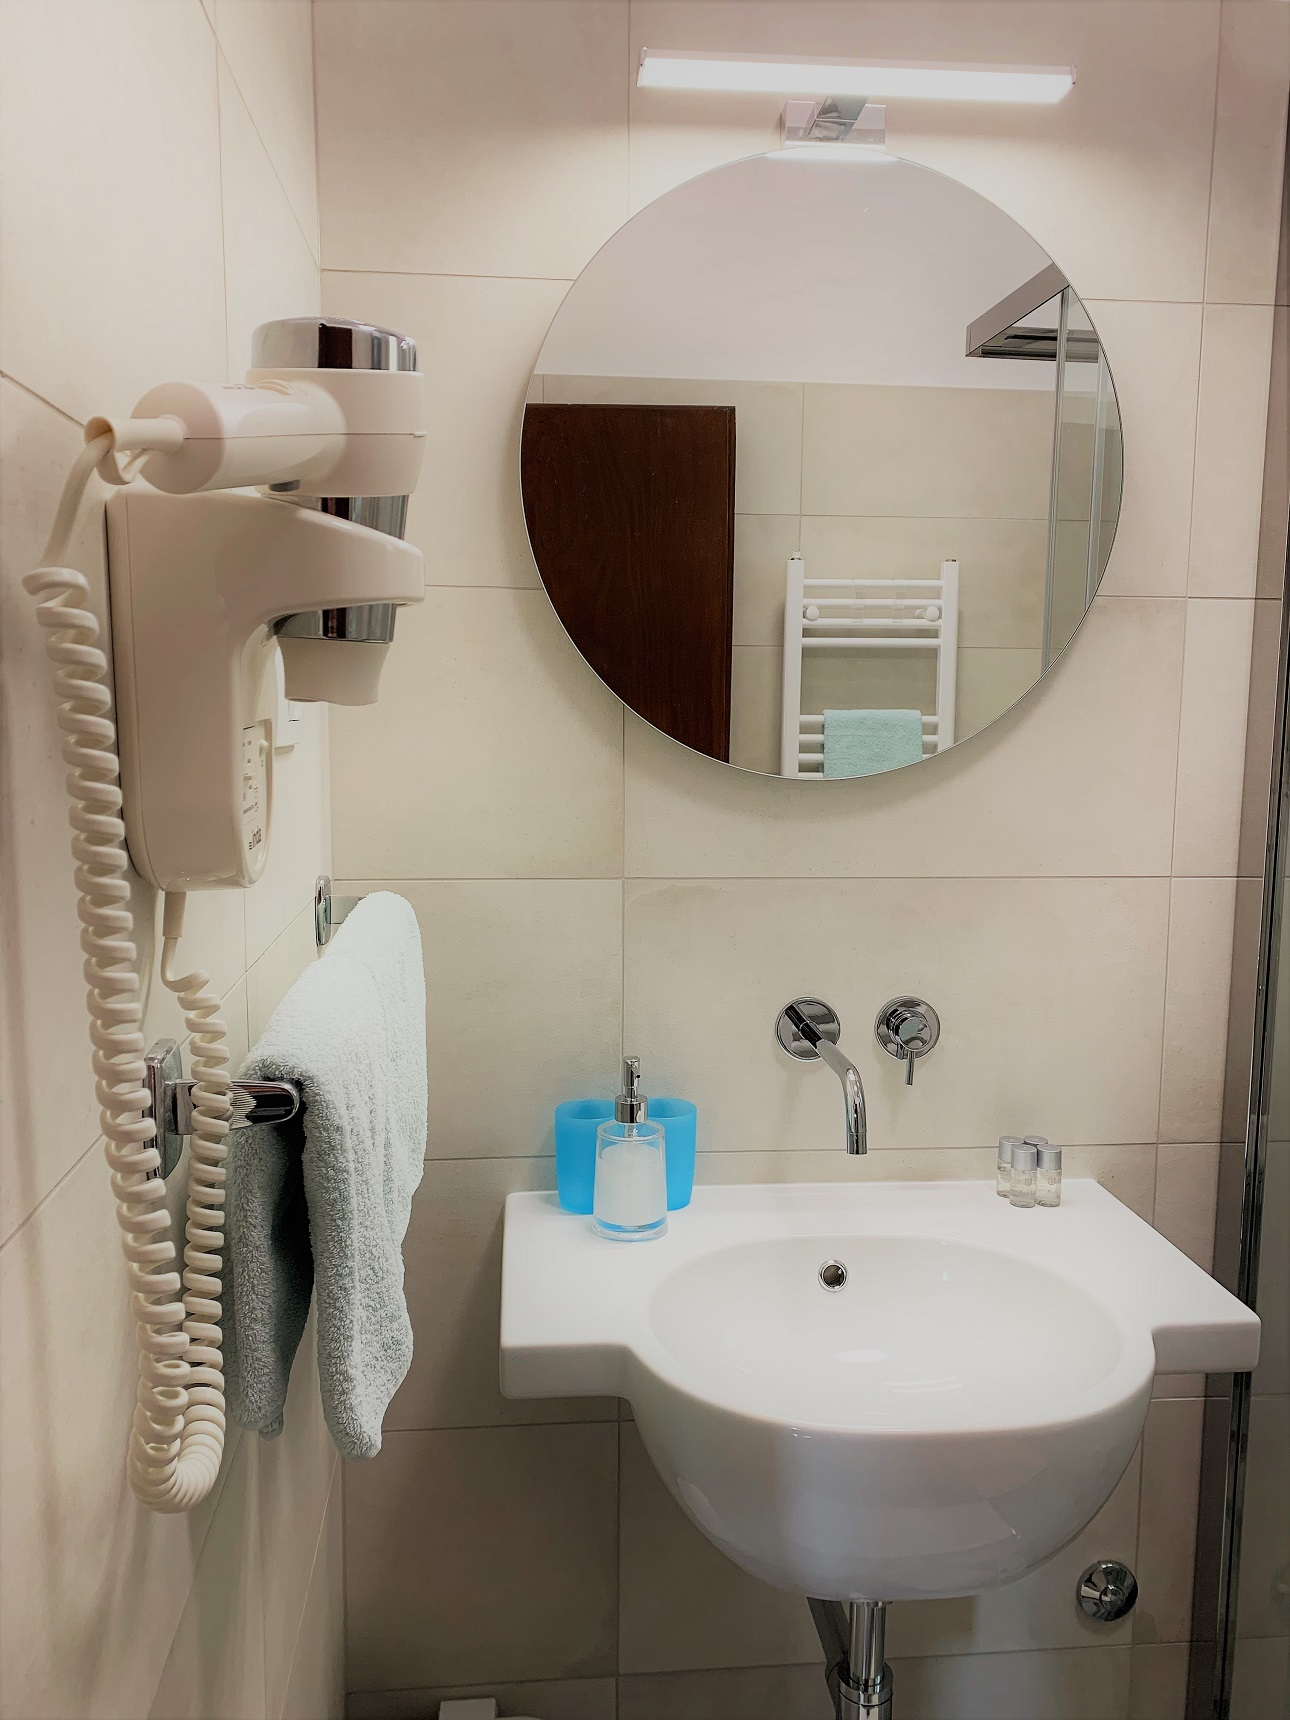 bathroom with hairdryer1290 pixela.jpg